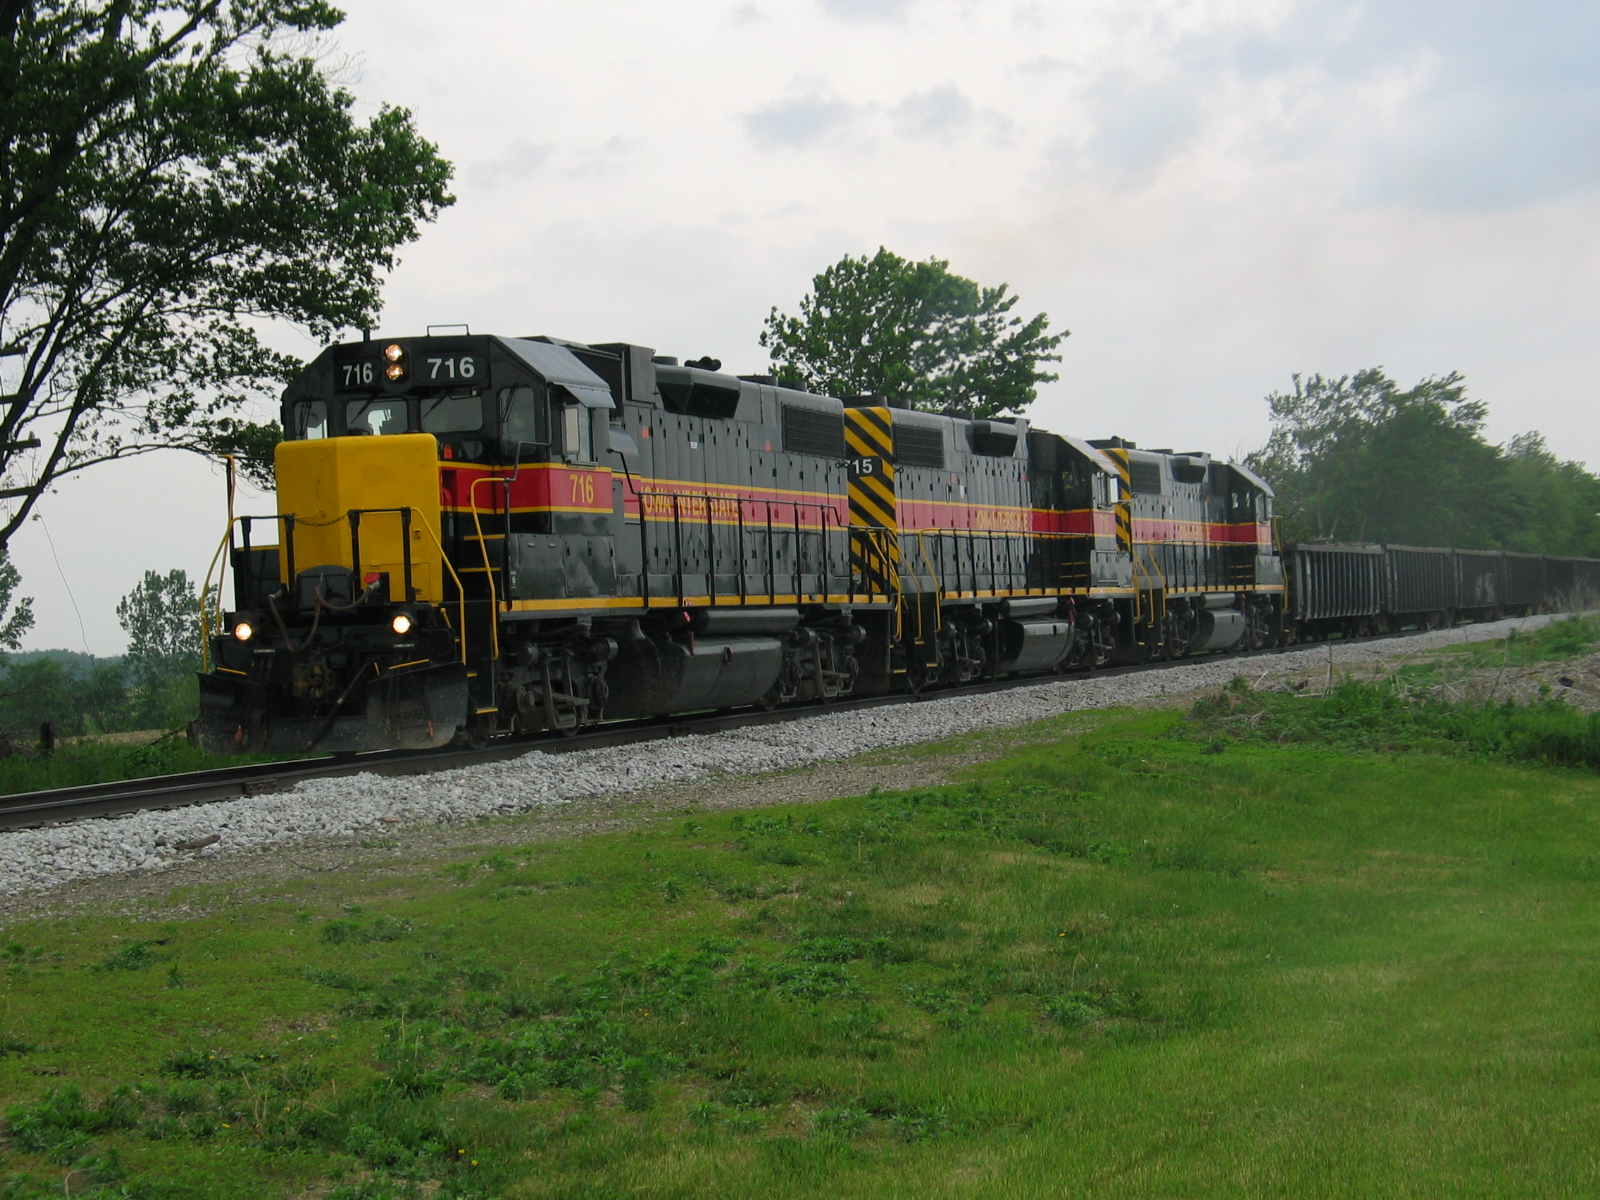 Eastbound at 206, east of Wilton, May 24, 2007.